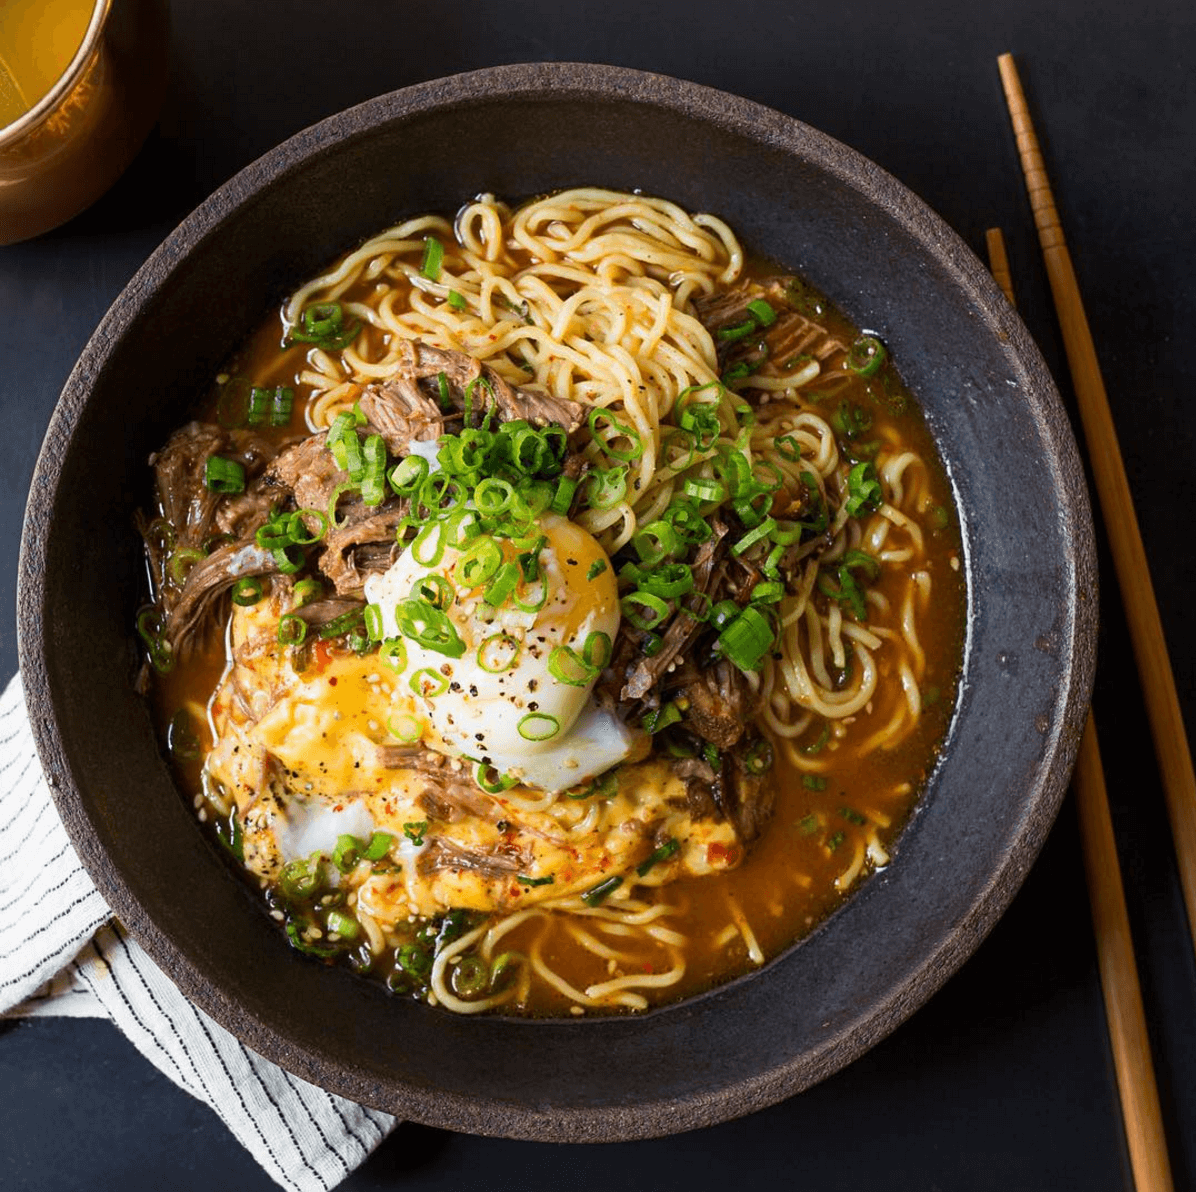 Shop Specialties Munchery Home Food Delivery Noodles